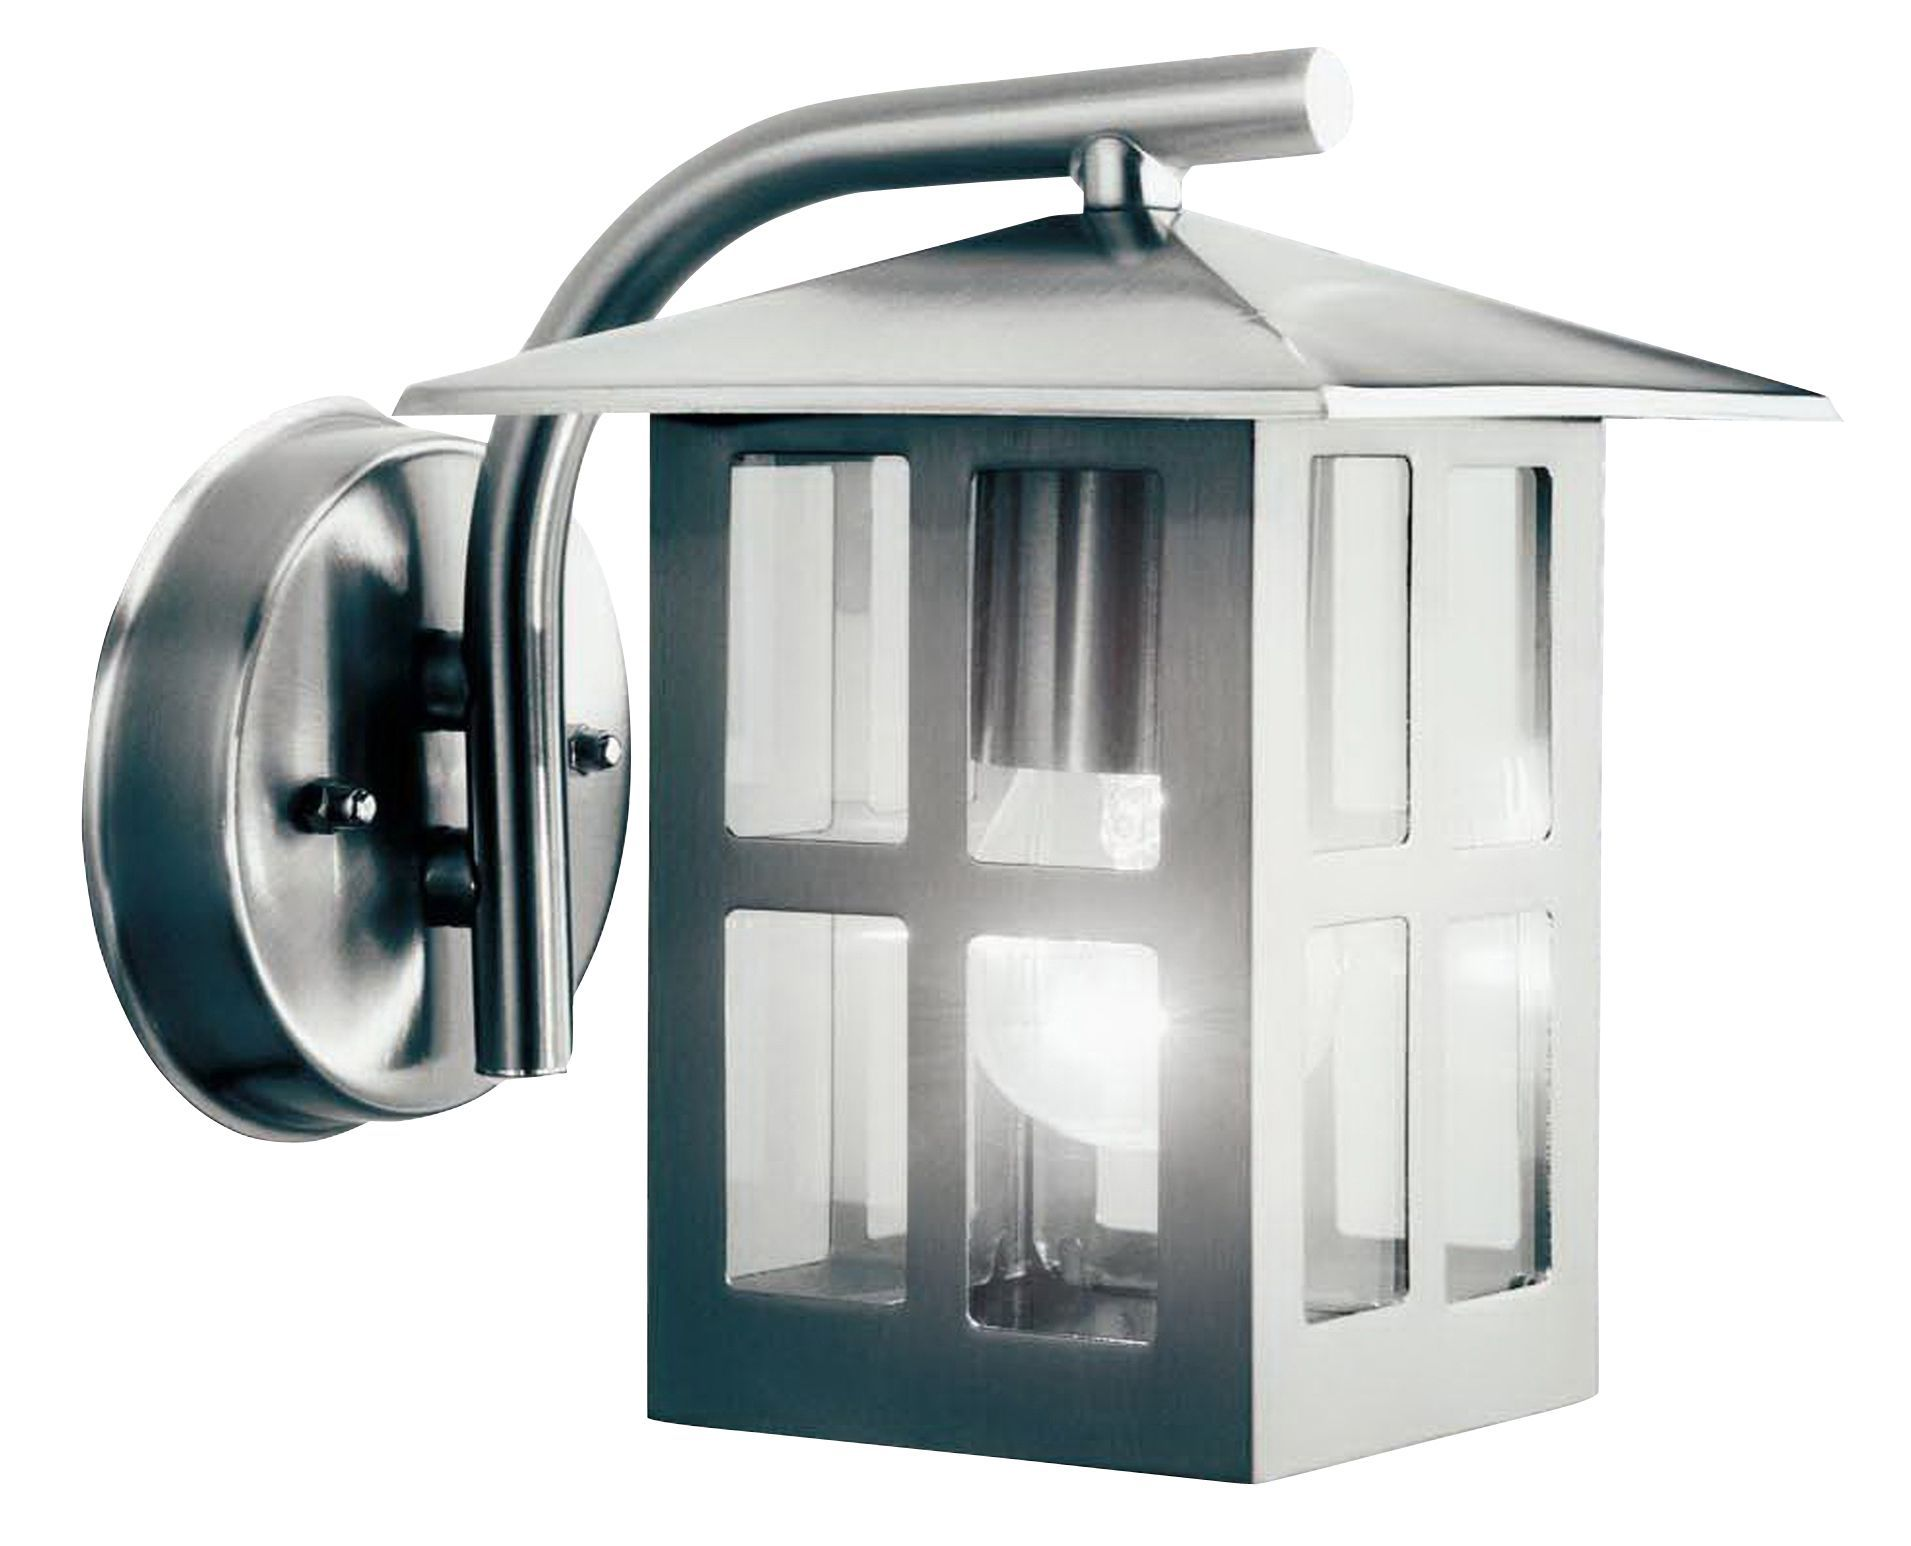 Wall Lantern External : Mains Powered External WALL LANTERN Glass Stainless Steel Porch Garden Lighting eBay